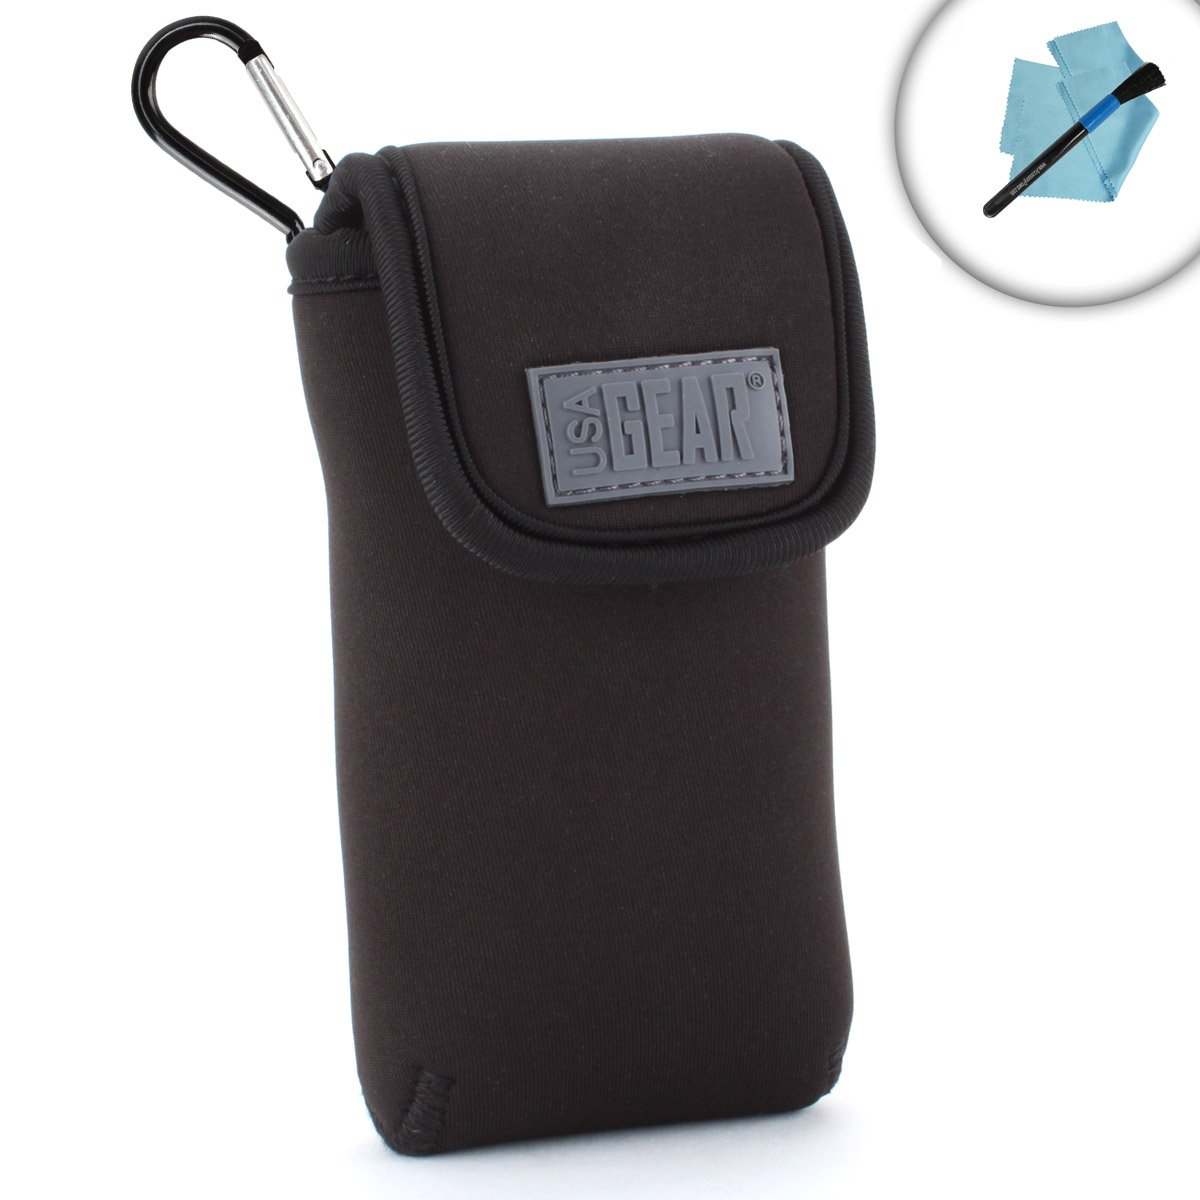 USA Gear Dual Band Handheld Transceiver Travel Sleeve Pouch with Carrying Belt Loop and Carabiner Clip Works with Baofeng BF-F8HP, UV-5R, UV-82C, BF-F8+ and More Radios